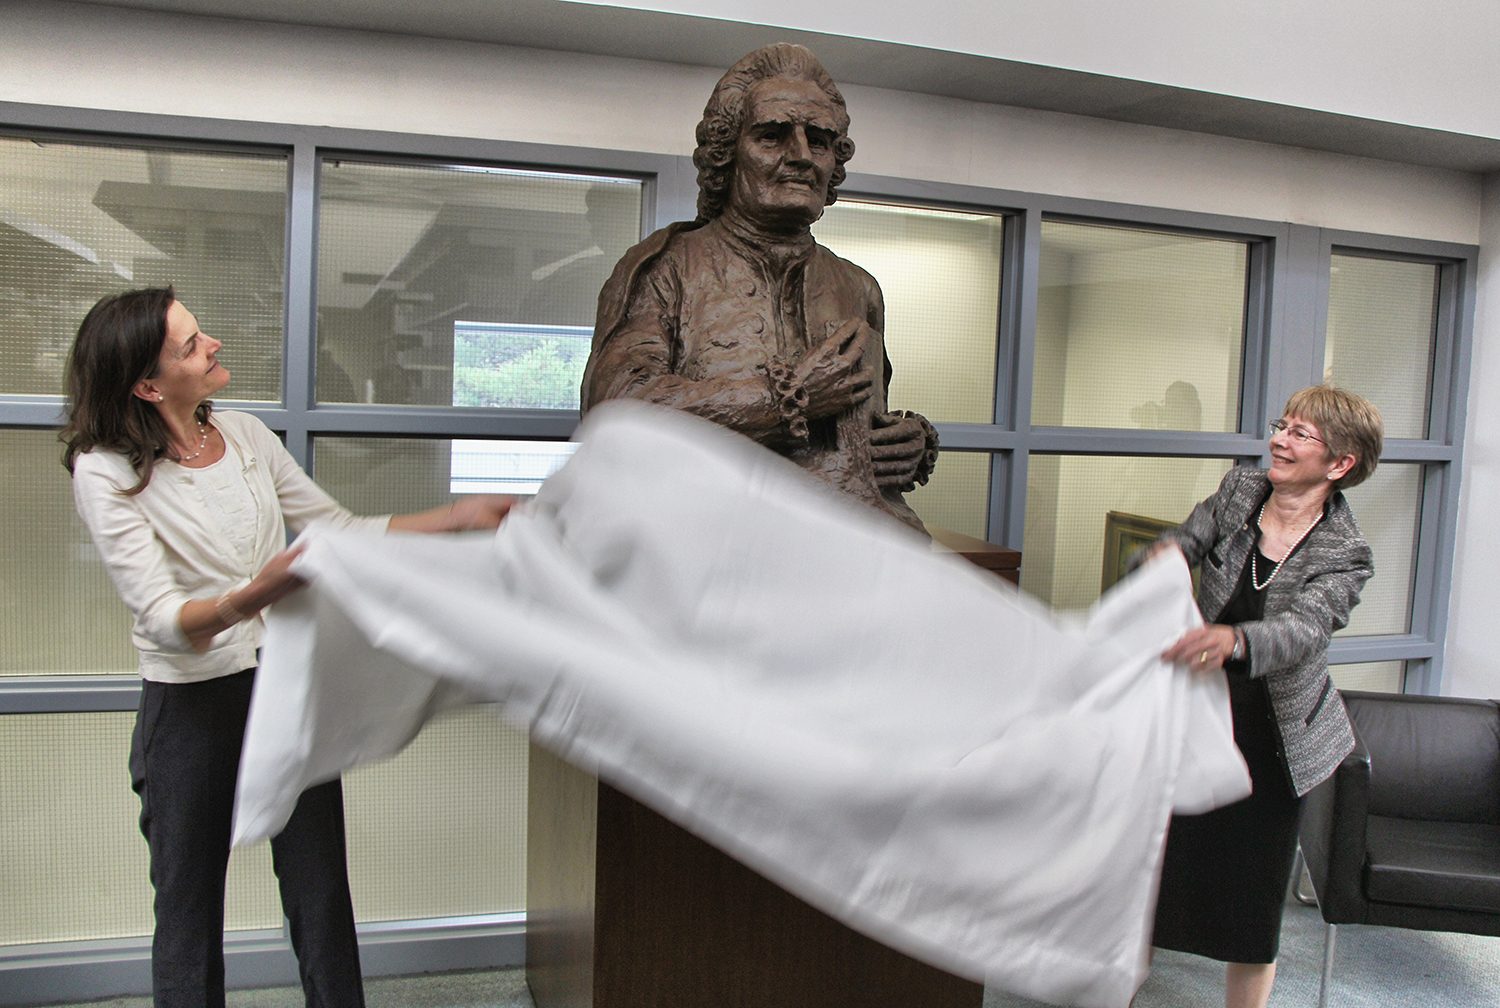 Dr. Kristin King, President of Bryn Athyn College, and Carroll Odhner, Director of the Swedenborg Library, unveil a plaster bust at the Swedenborg Library (2013).